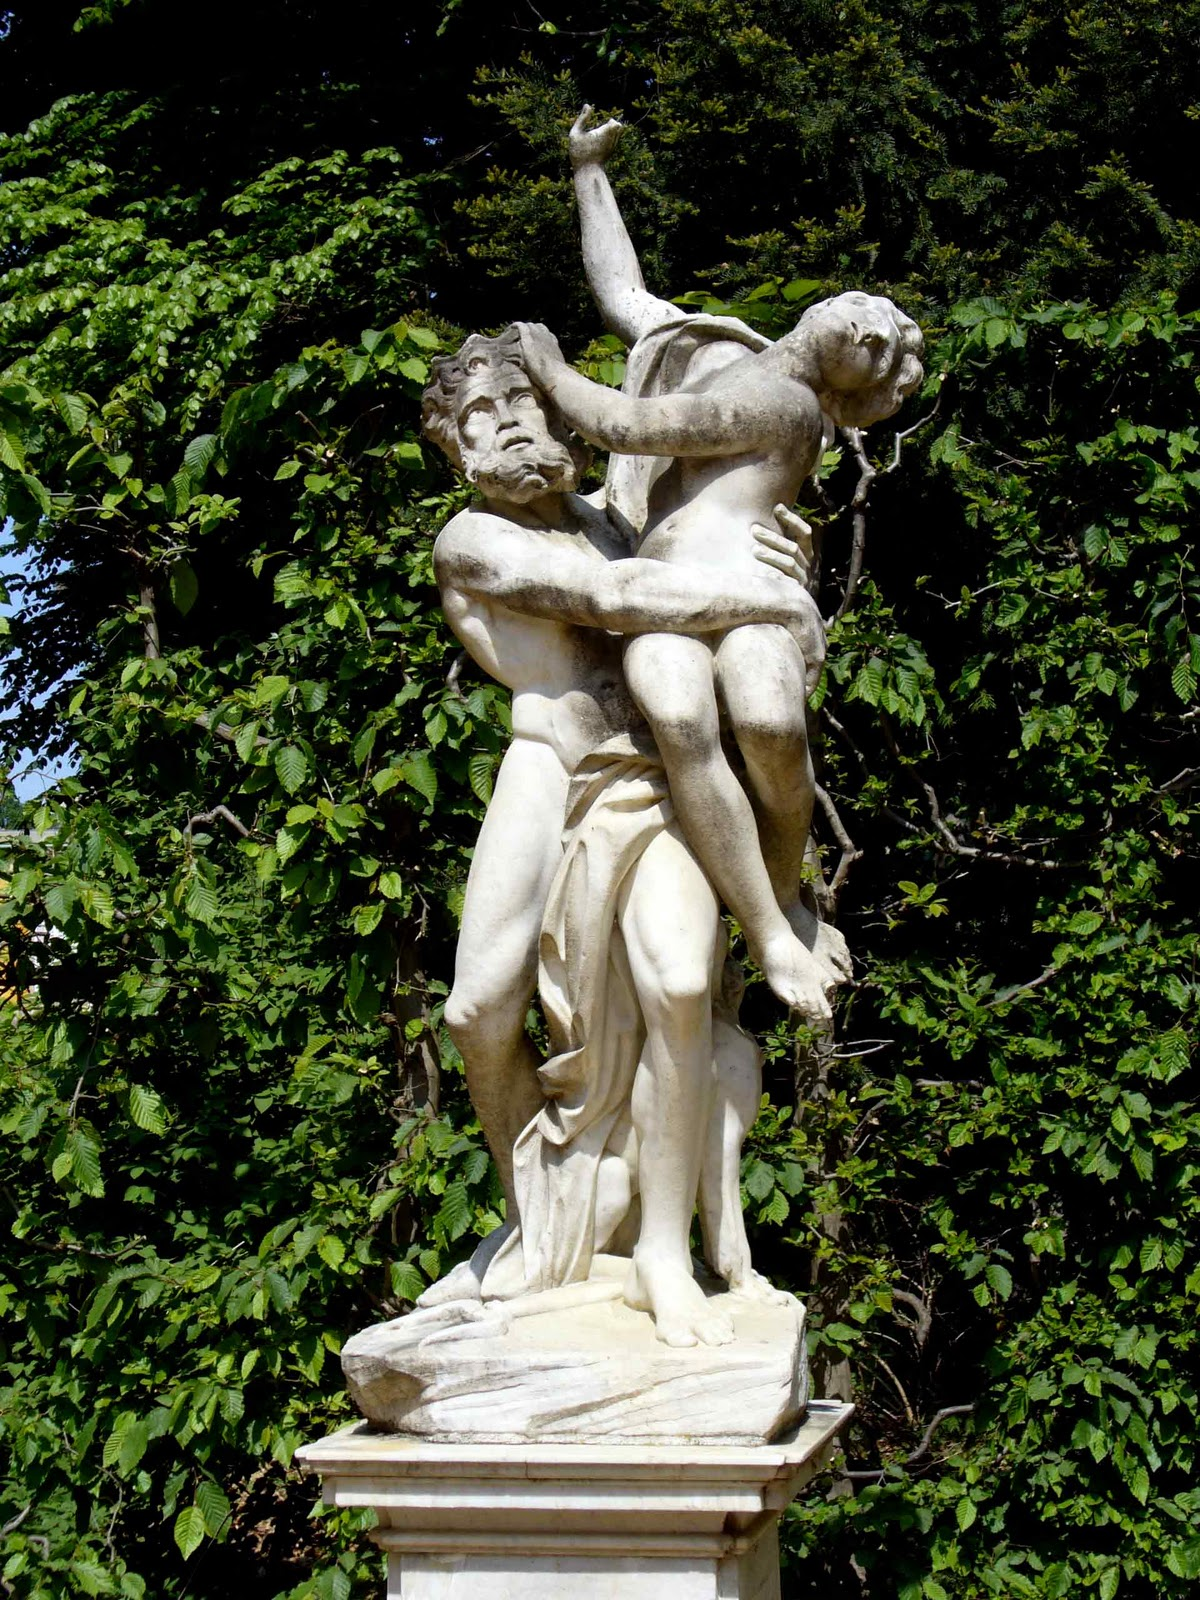 abduction of persephone Nysion (or mysion), the place of the abduction of persephone was also probably a mythical place which did not exist on the map, a magically distant chthonic land of myth which was intended in the remote past.